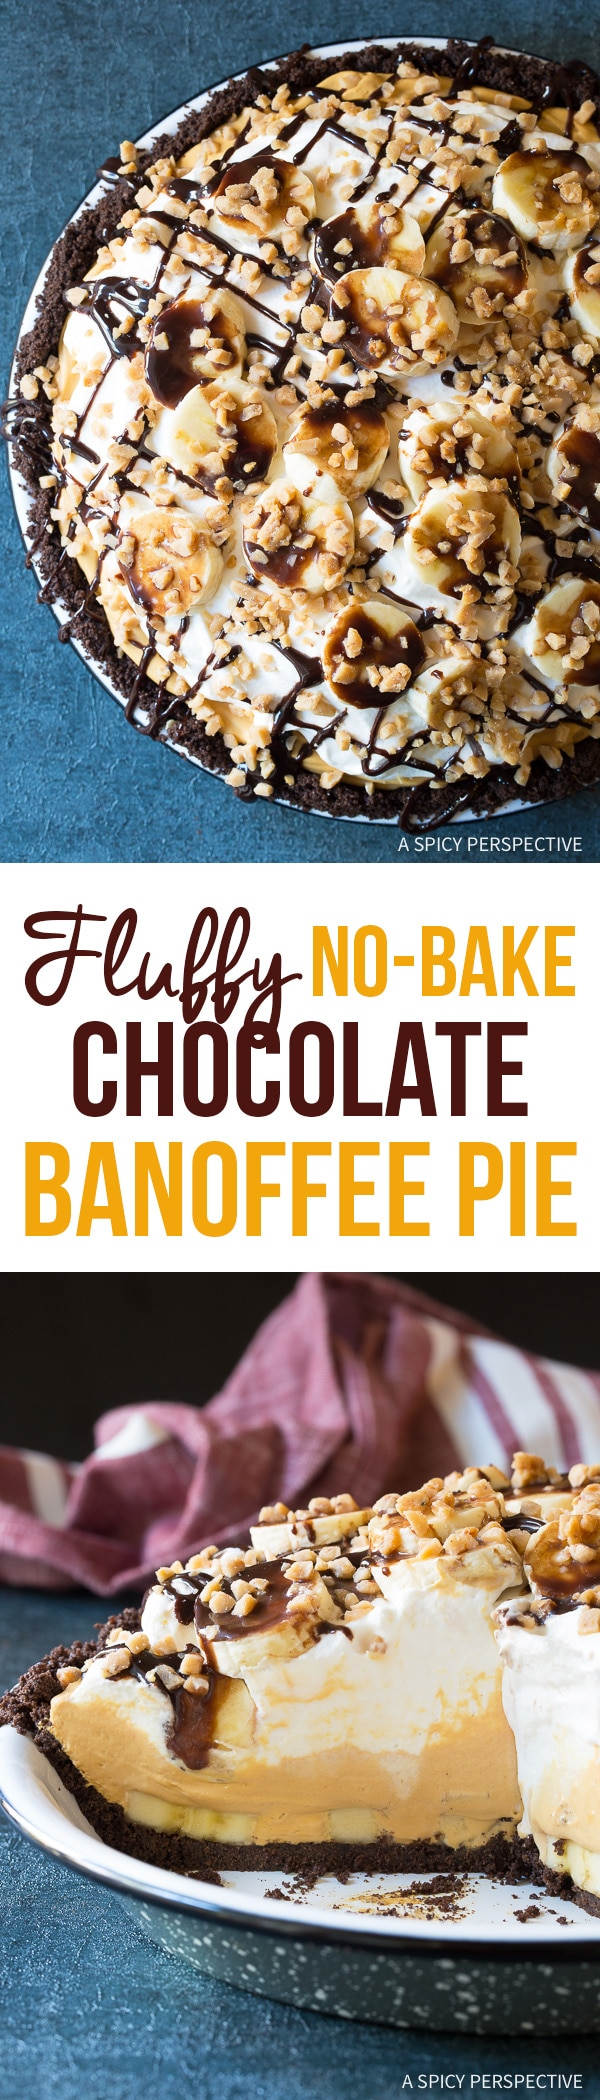 Fluffy No-Bake Chocolate Banoffee Pie Recipe for Easter!